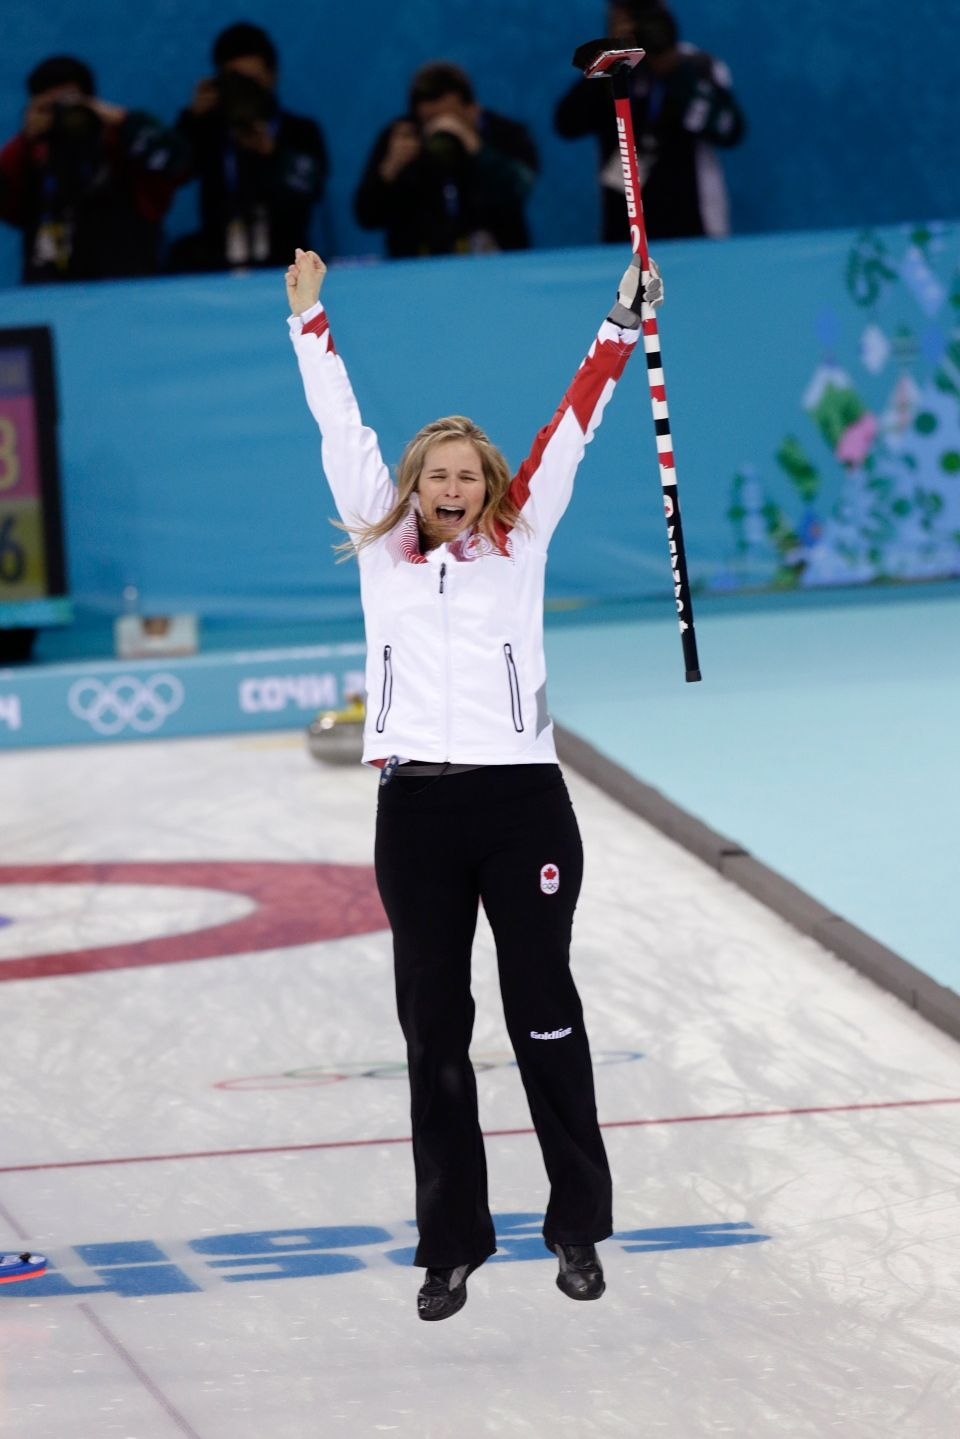 Canada takes Olympic curling gold Olympic curling